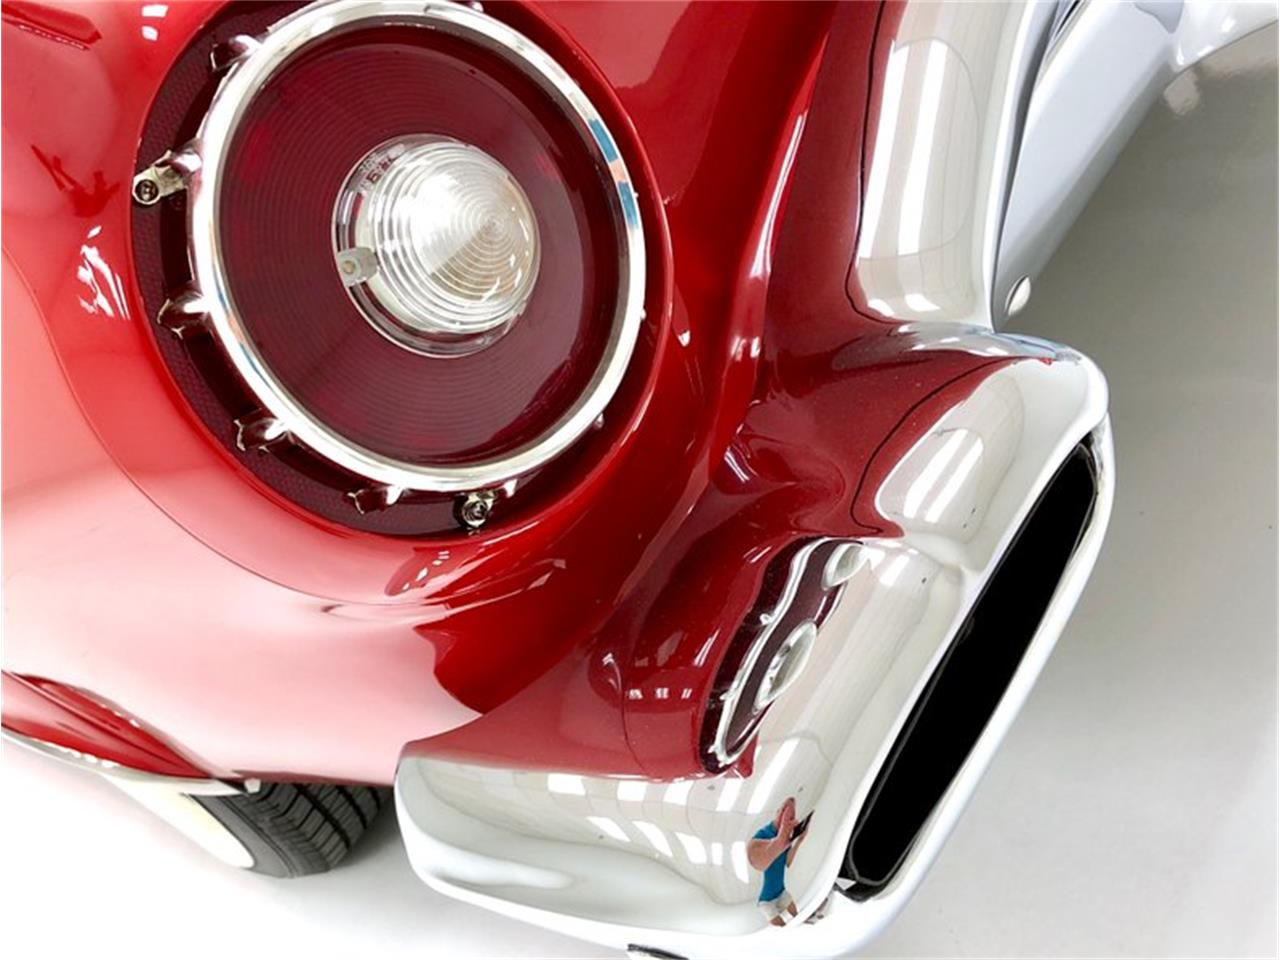 1957 Ford Thunderbird for sale in Morgantown, PA – photo 27